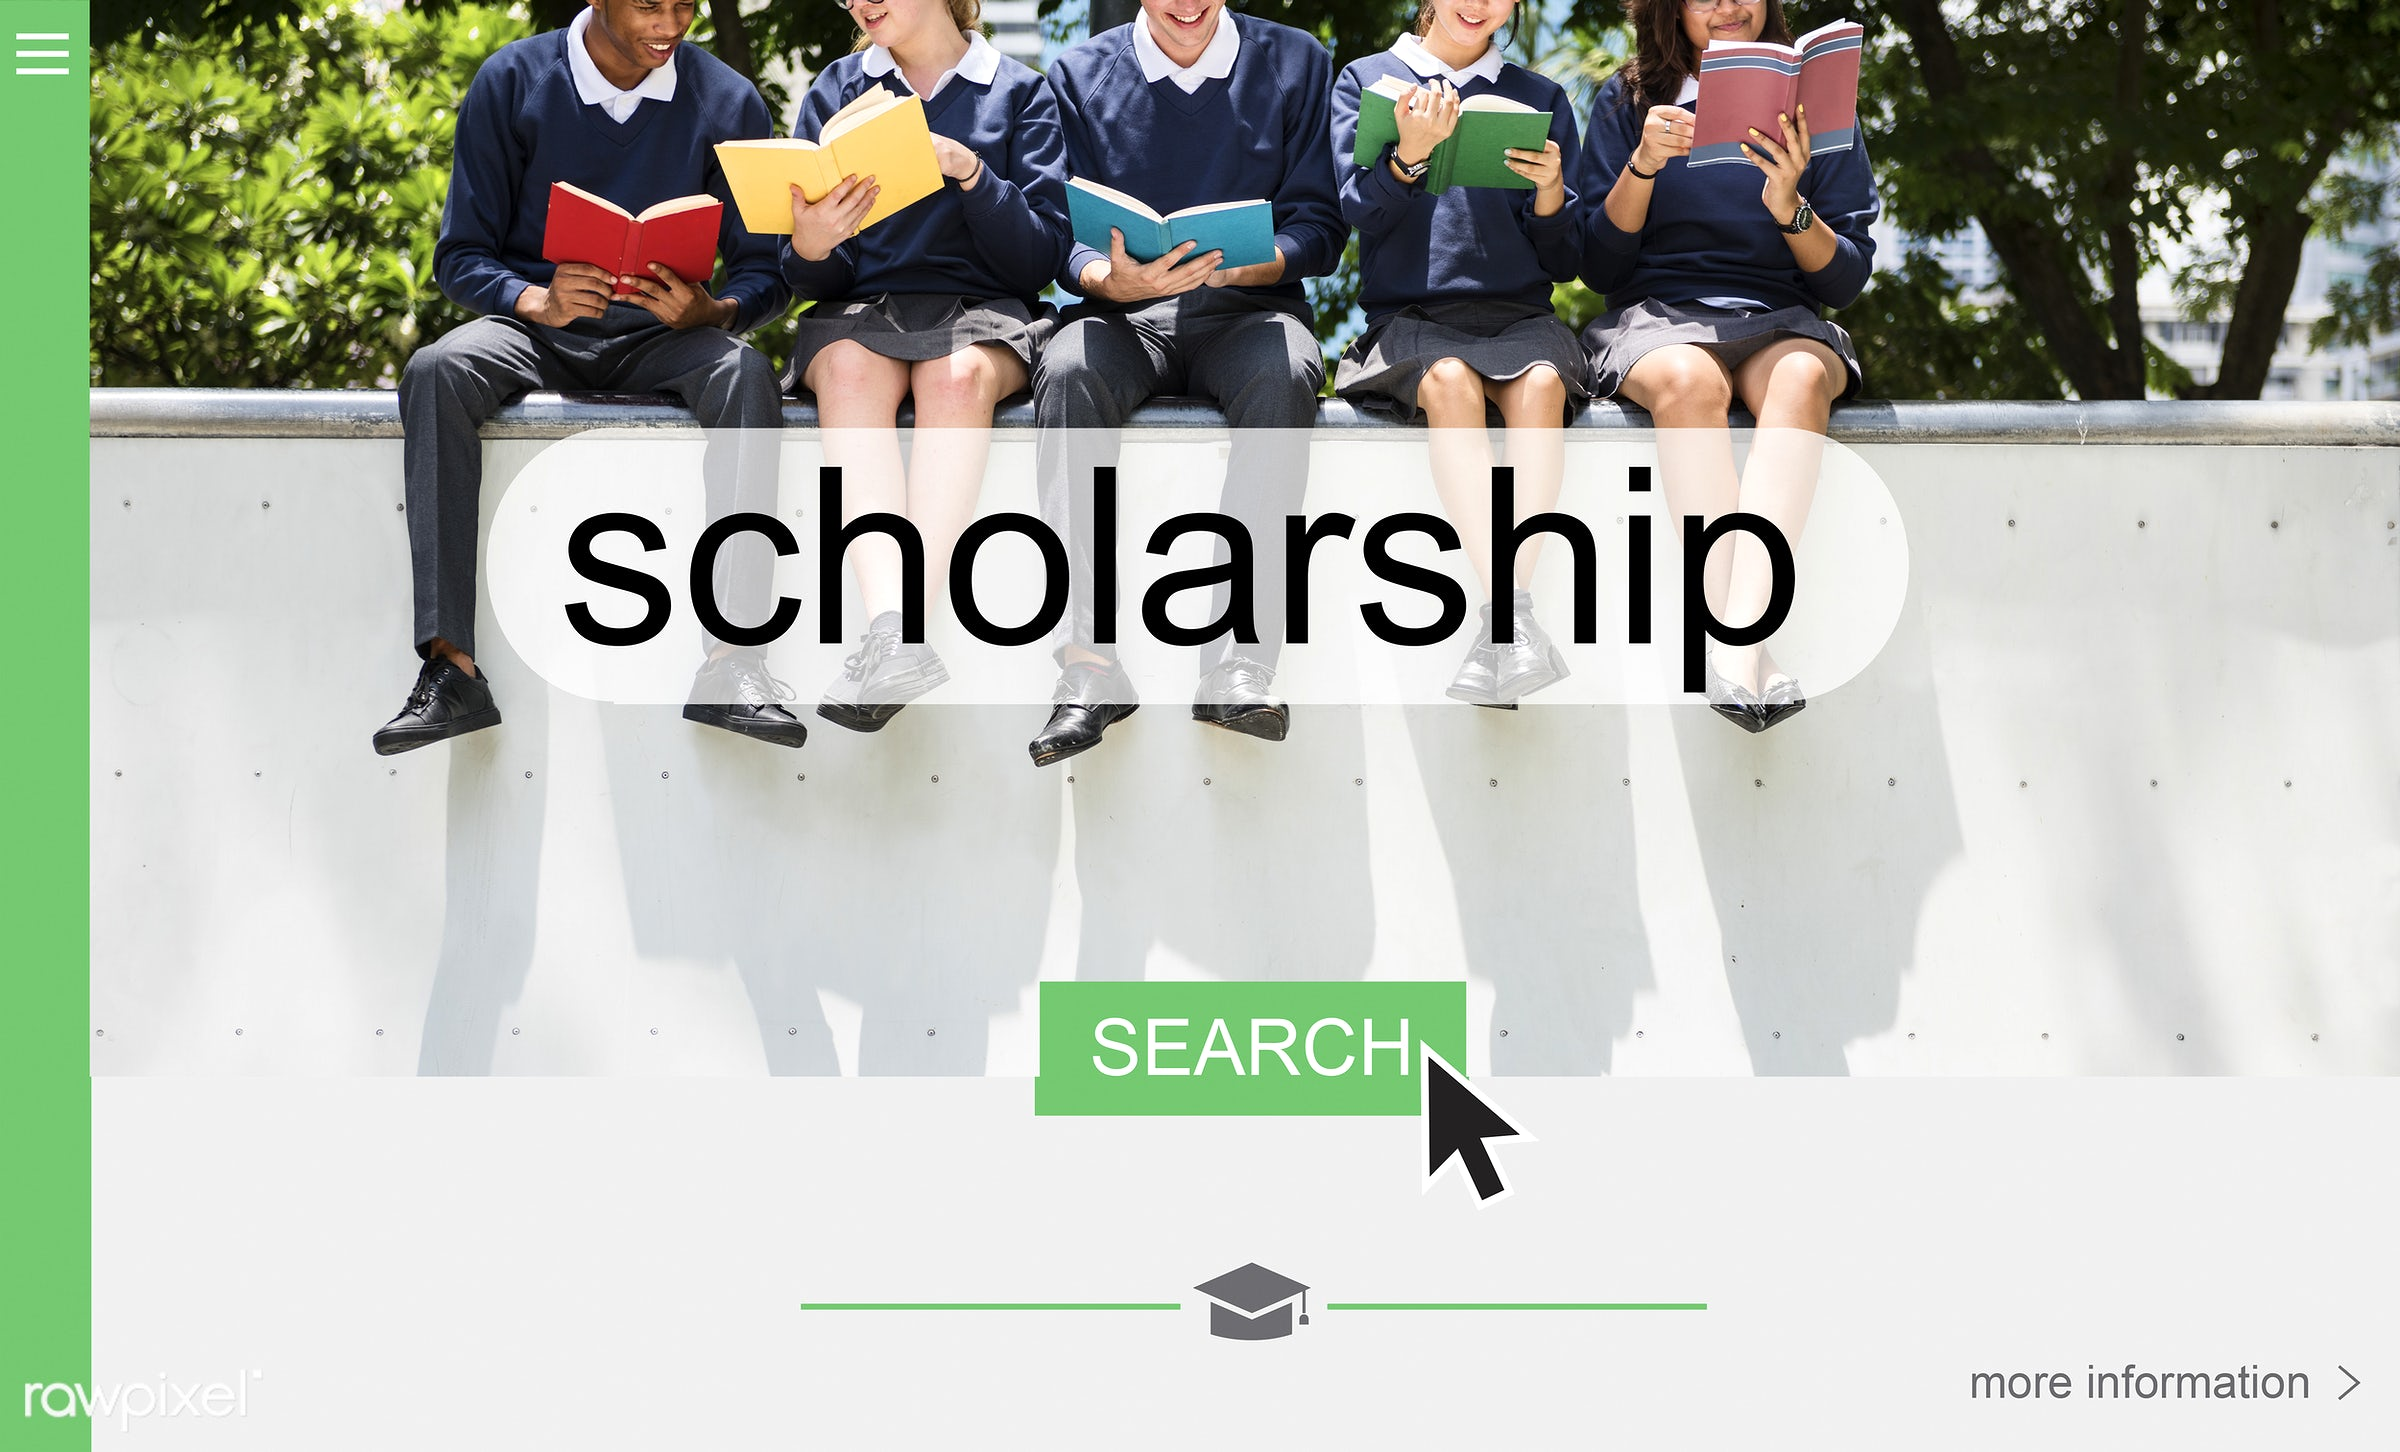 Scholarship application - academic, achievement, award, books, class, college, degree, diversity, education, fees, financial...